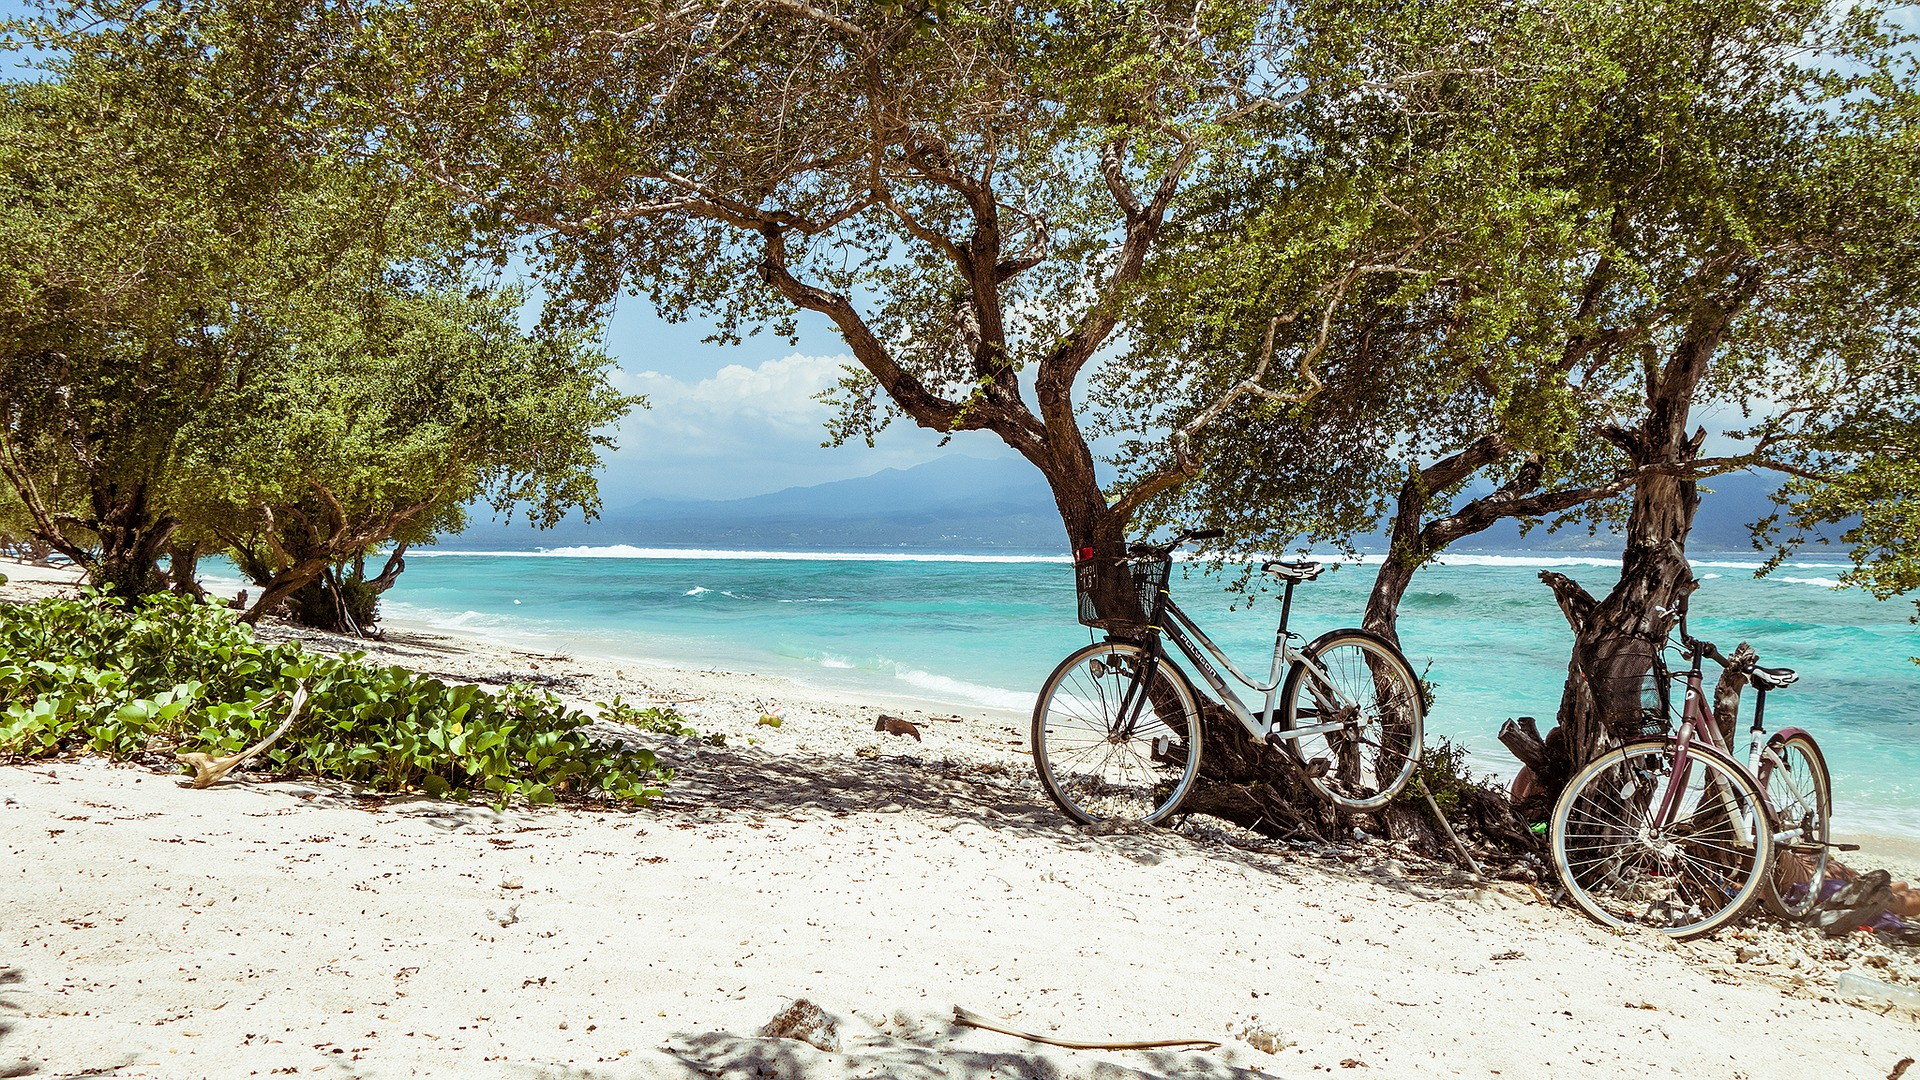 A Cozy Paradise on Earth: Nusa Lembongan